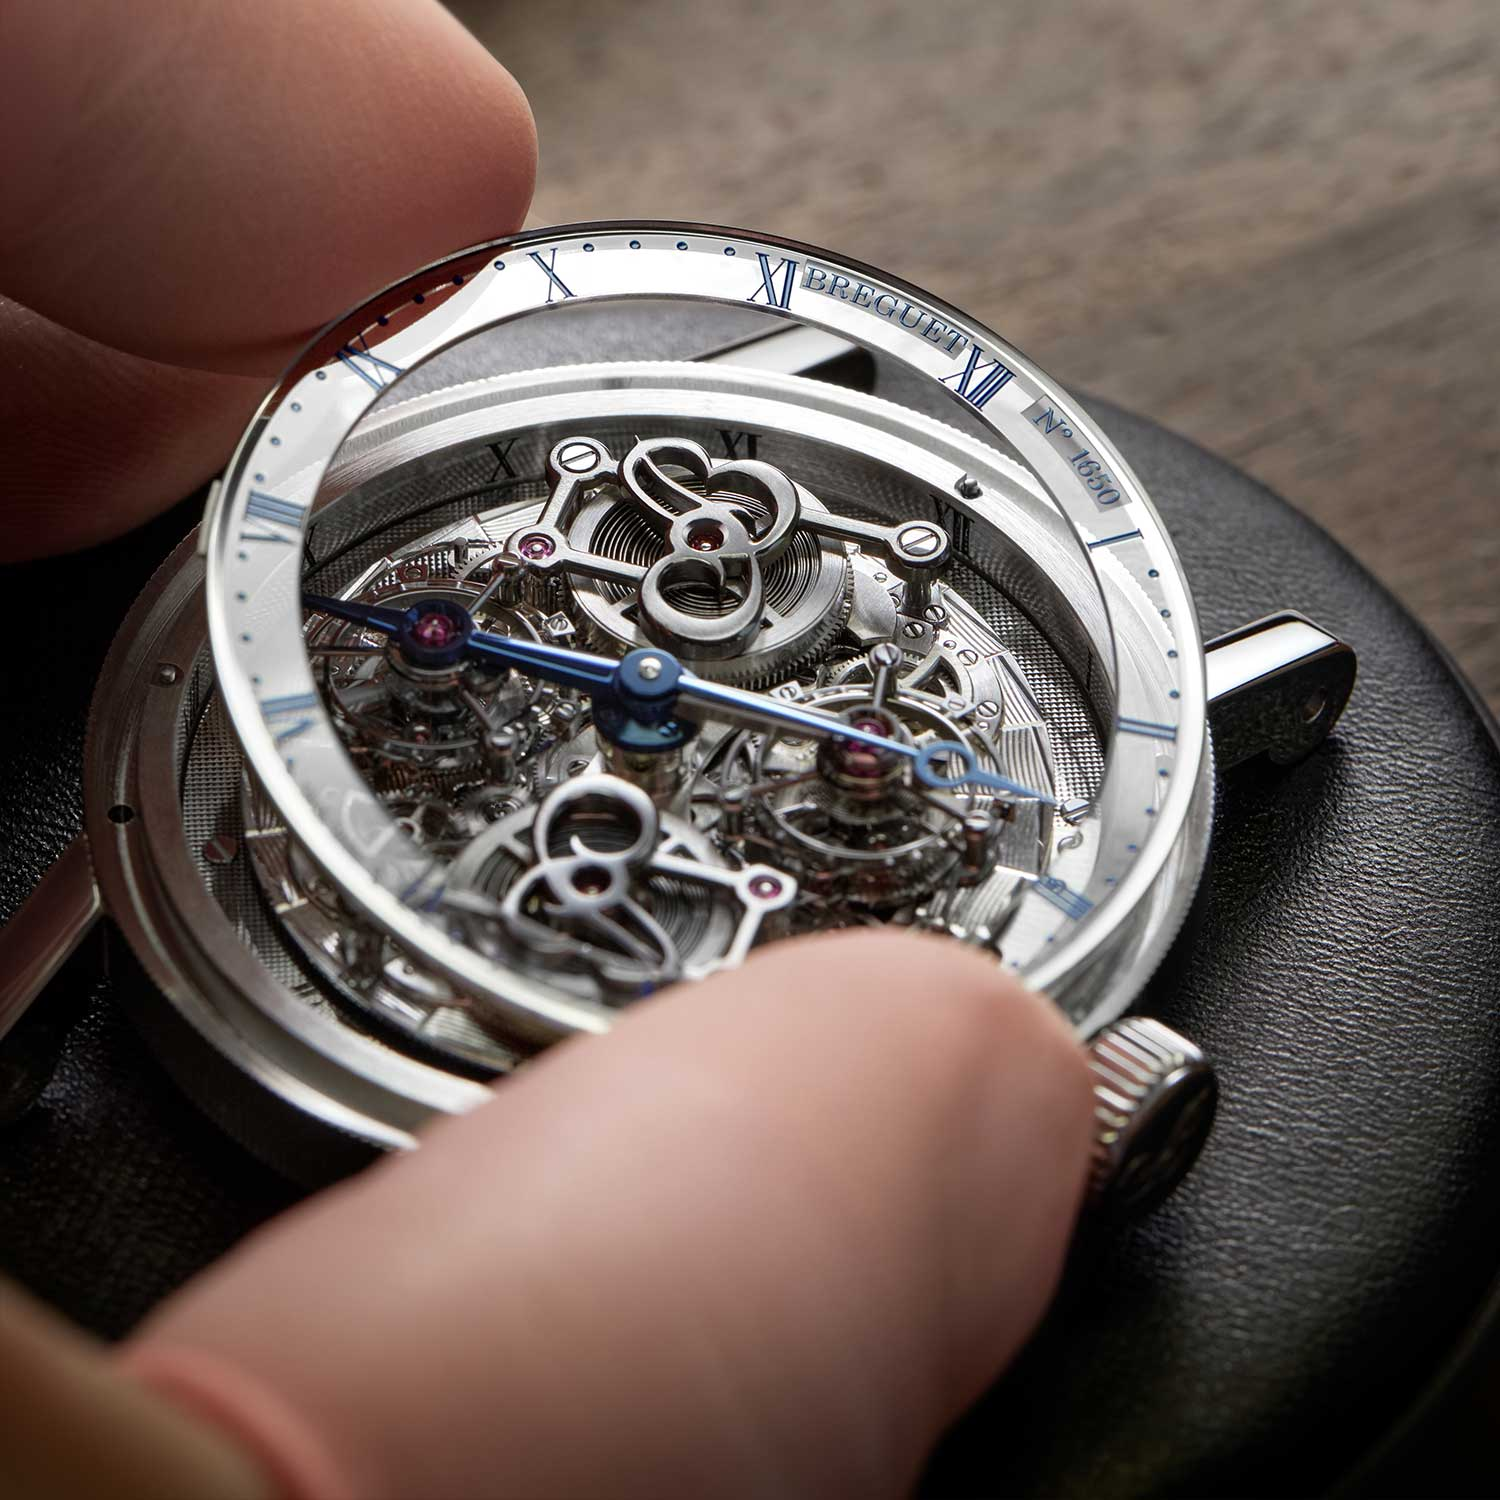 Placing the large domed sapphire that sits over the face of the Breguet Classique Double Tourbillon 5345 Quai de L'horloge